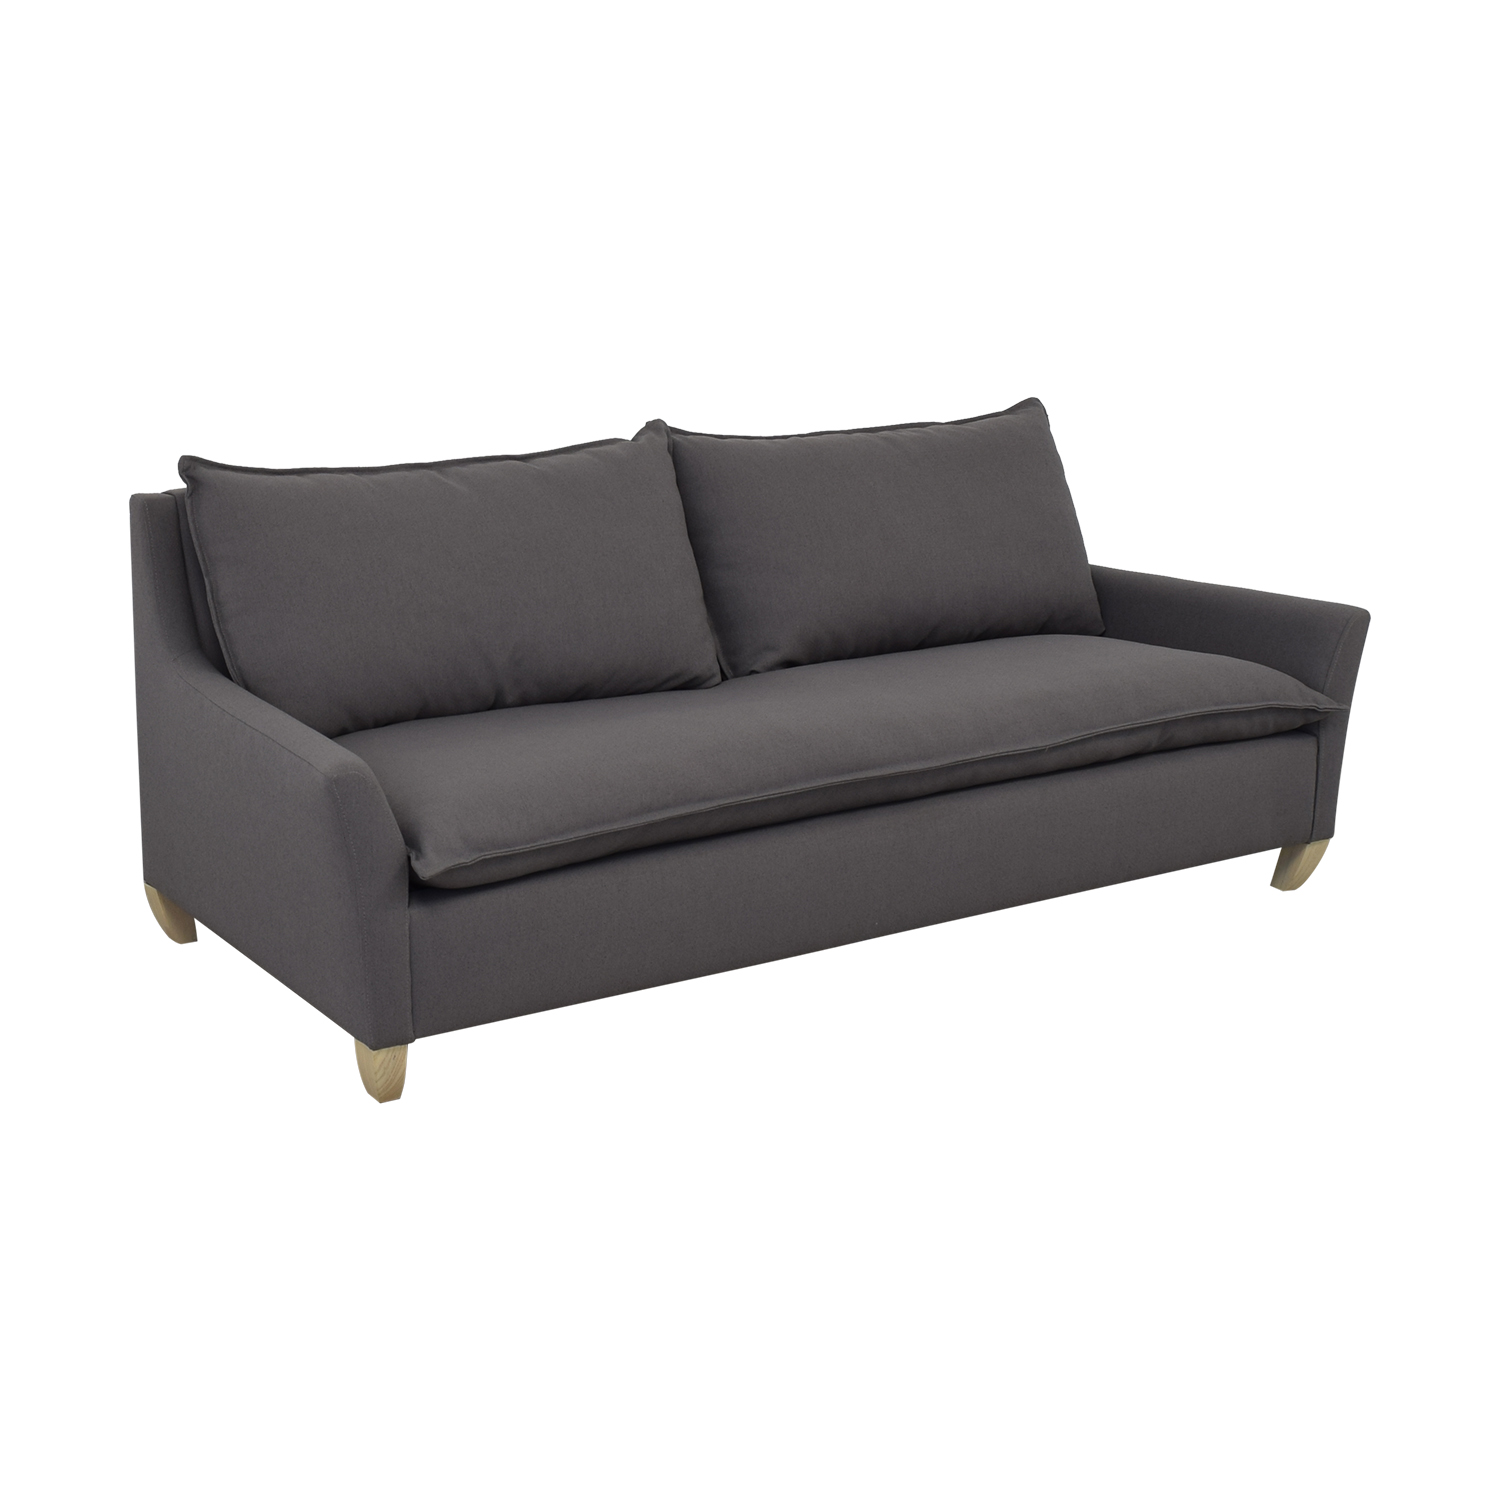 West Elm West Elm Bliss Sleeper Sofa second hand